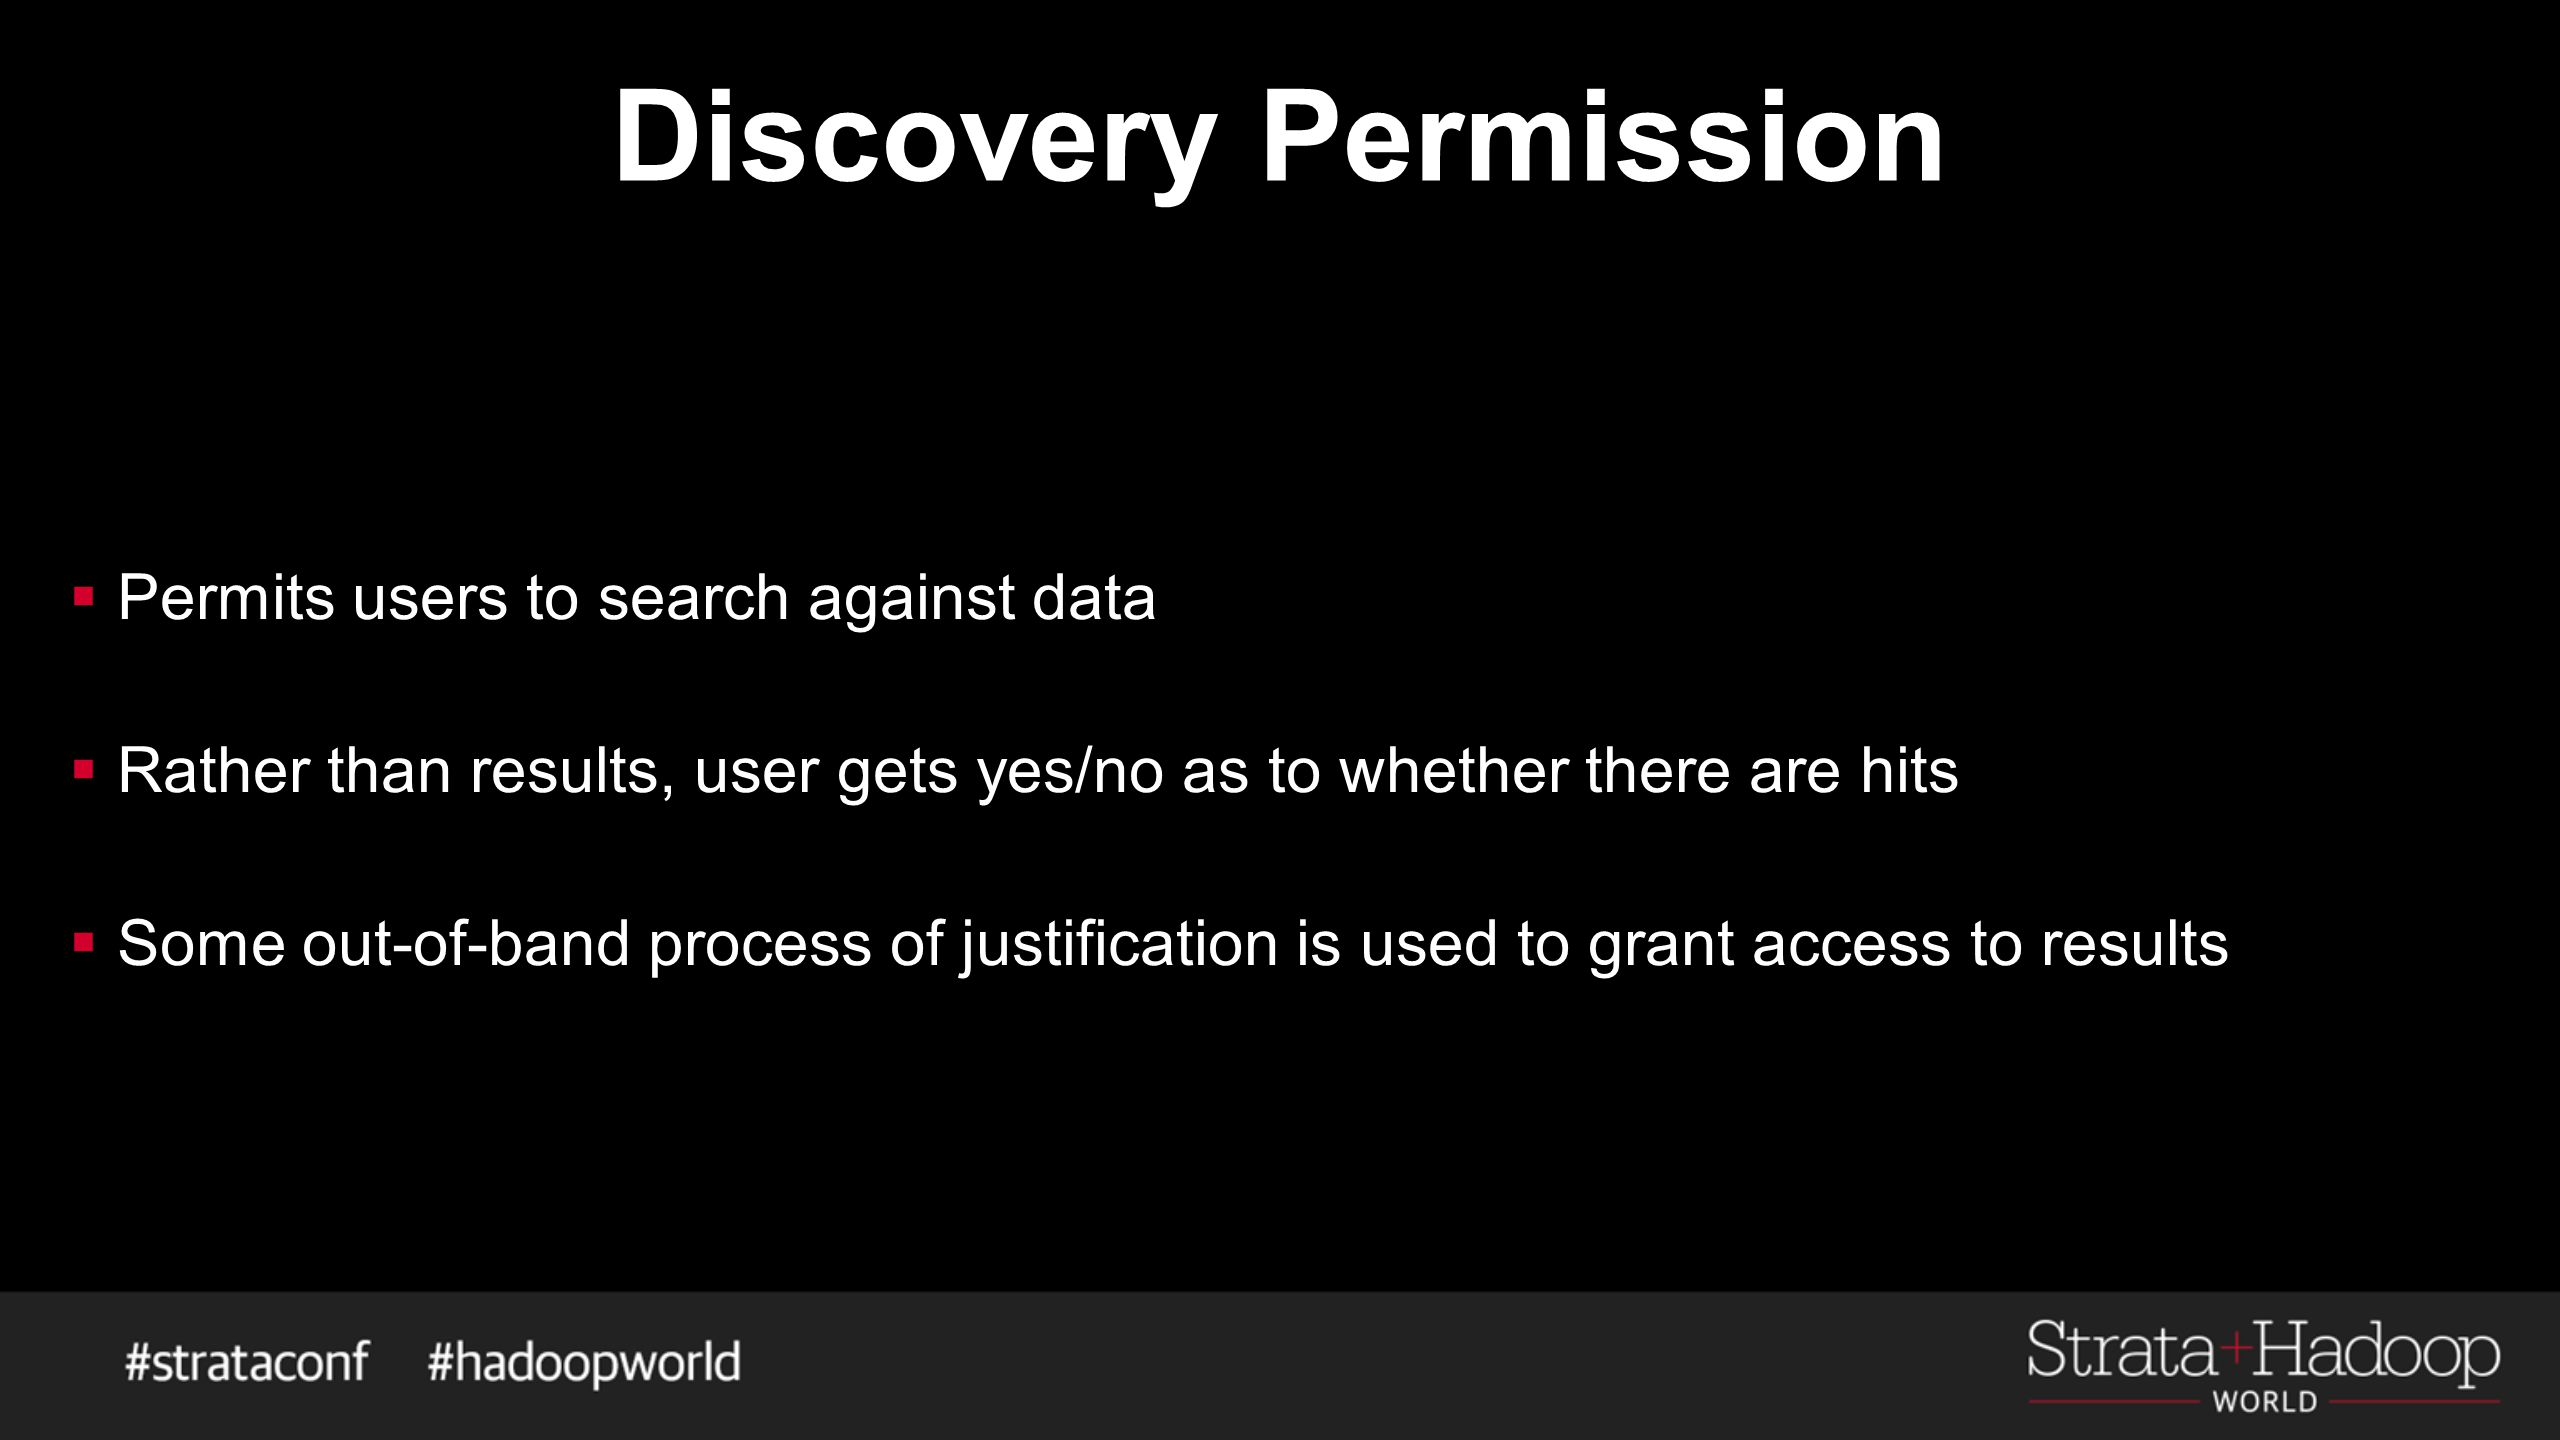 Discovery Permission  Permits users to search against data  Rather than results, user gets yes/no as to whether there are hits  Some out-of-band process of justification is used to grant access to results